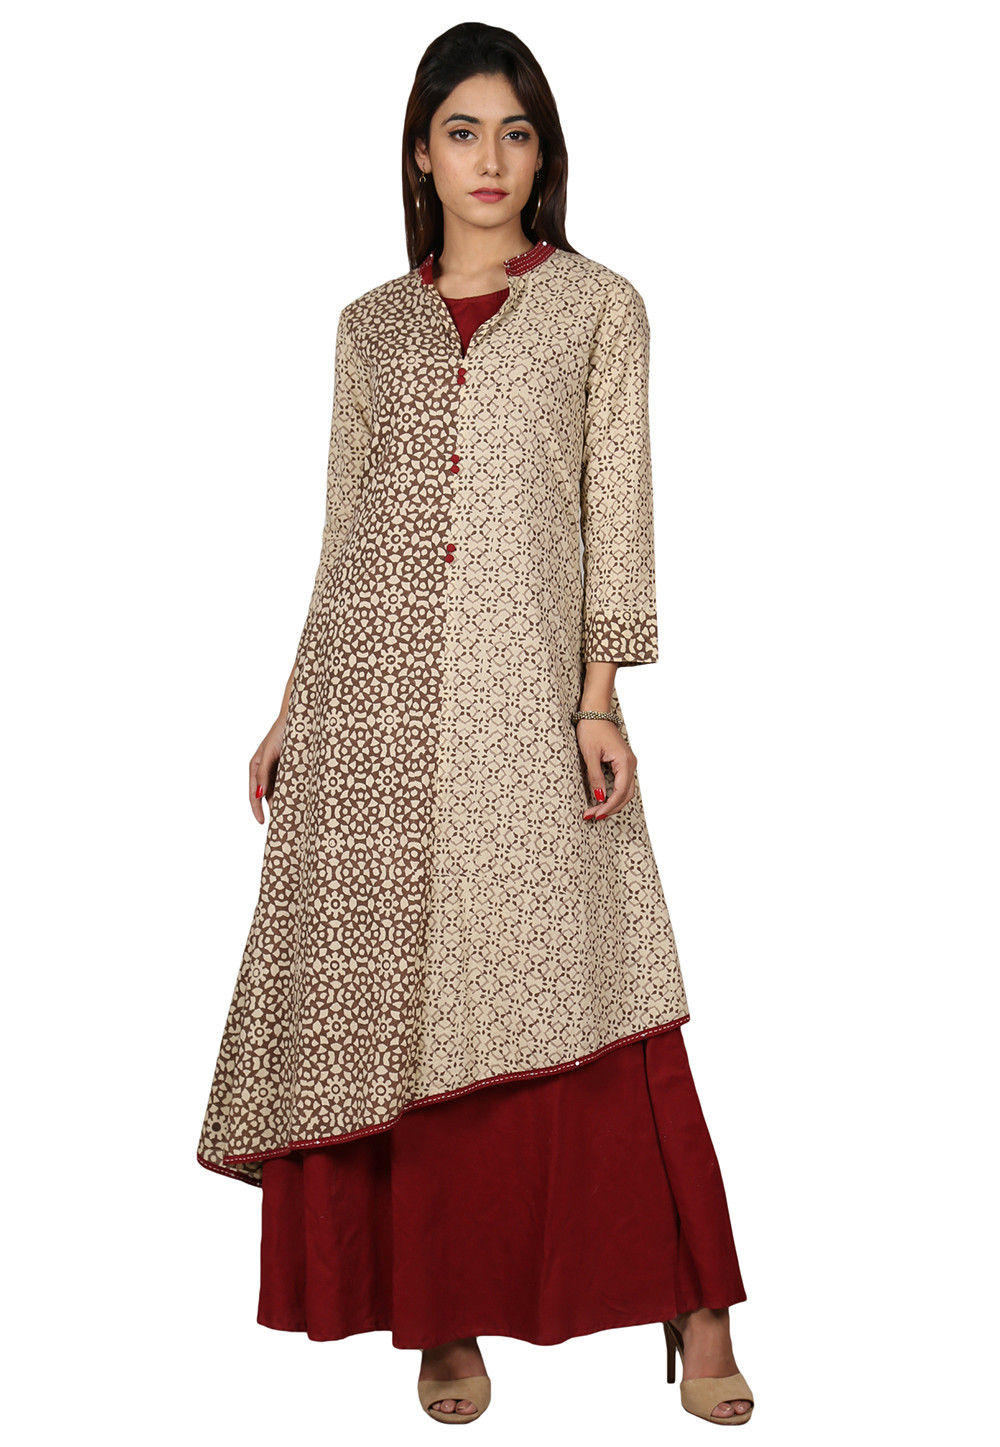 Printed Cotton Kurta with Jacket in Maroon